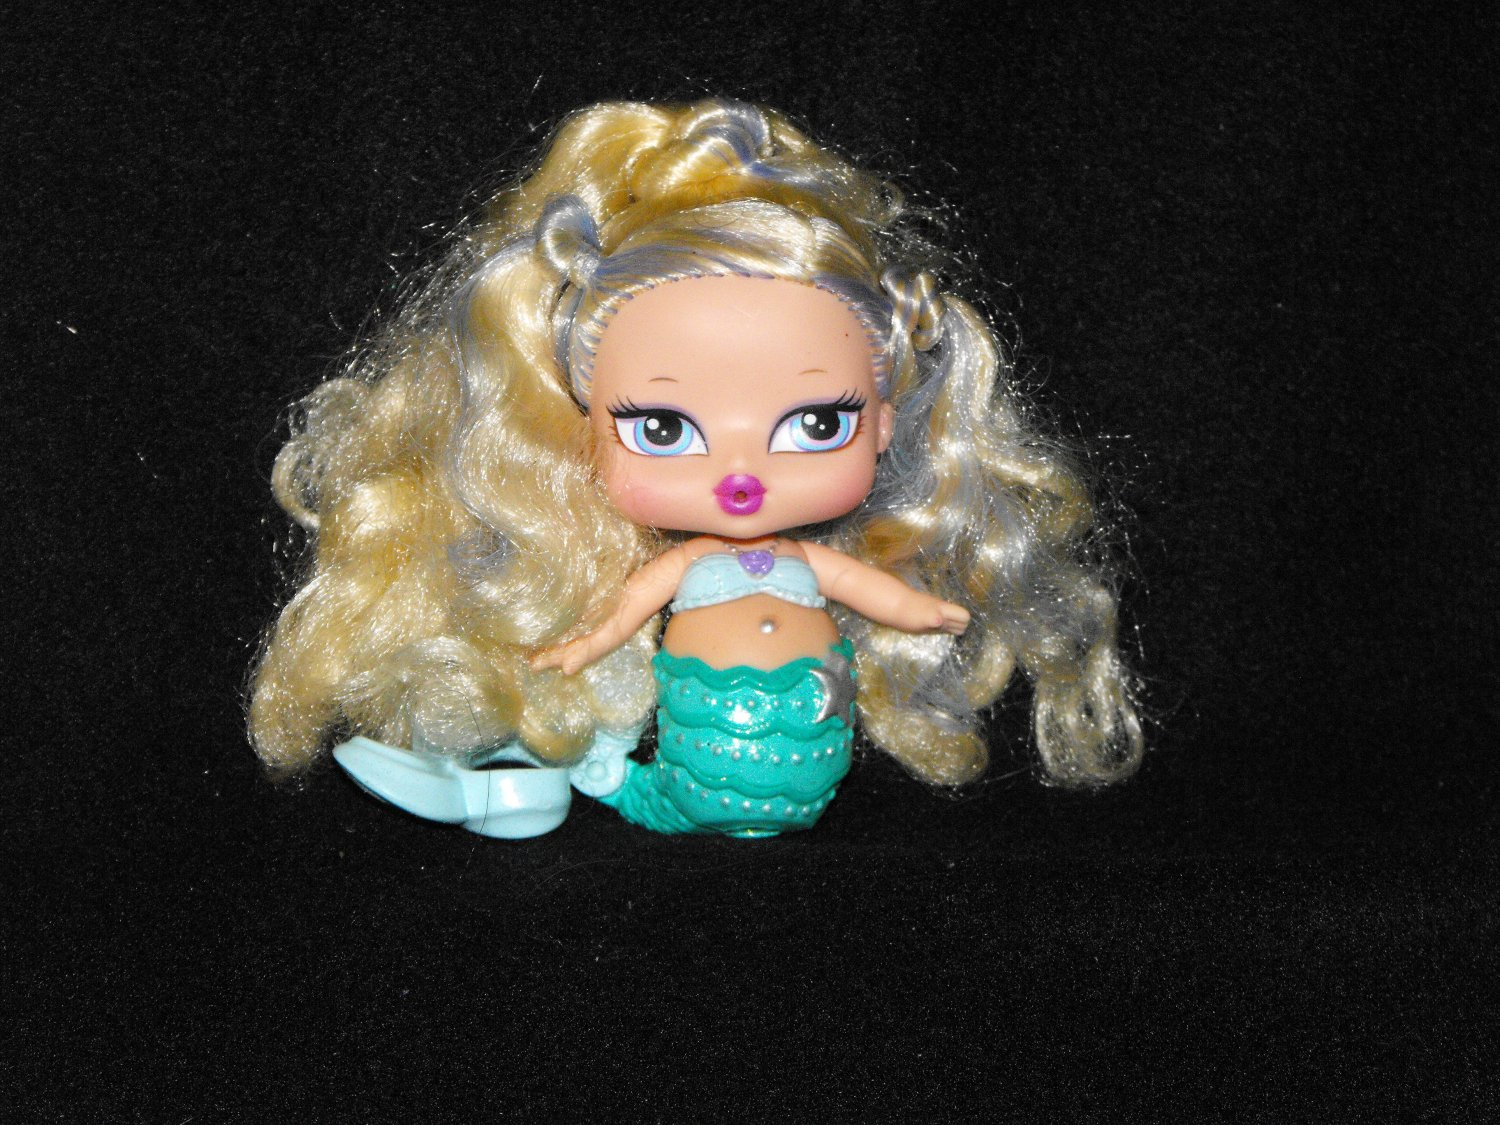 buy rc toys with Bratz Babyz Mermaidz Cloe Doll on The Pile Driver Trade Poop Remote Control Car additionally I further bmikarts moreover Bratz Babyz Mermaidz Cloe Doll moreover Jay puter.